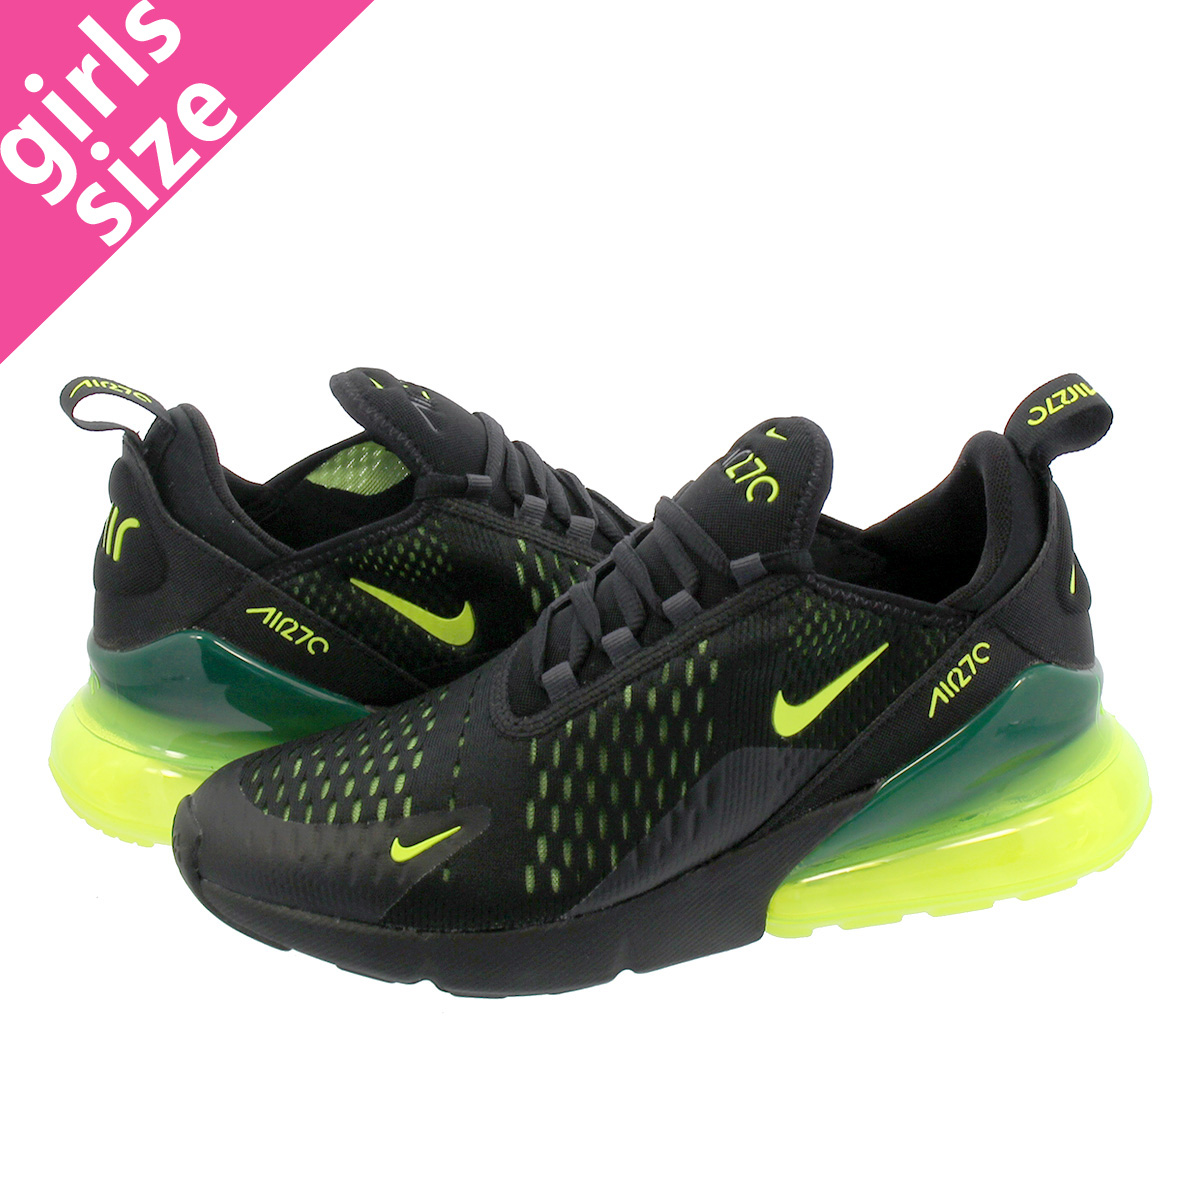 new product ea373 ae3b6 NIKE AIR MAX 270 GS Kie Ney AMAX 270 GS BLACK/NEON GREEN 943,345-011